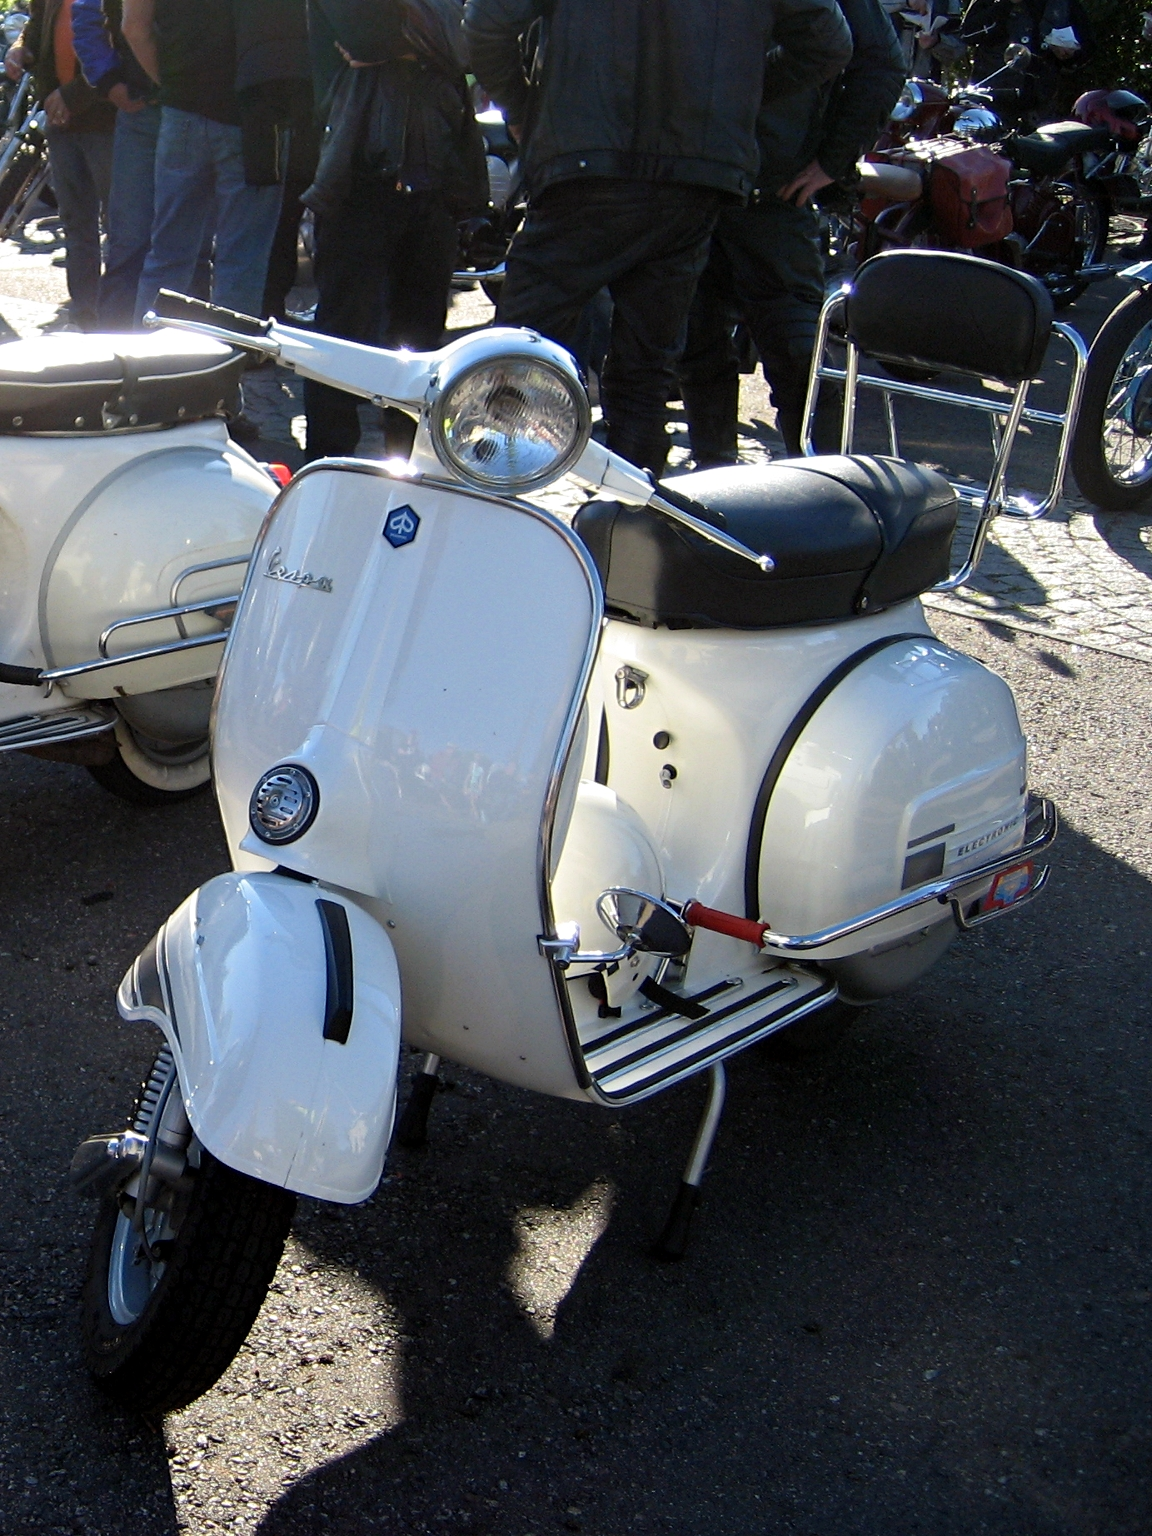 file vespa rally 200 electronic front jpg wikimedia commons. Black Bedroom Furniture Sets. Home Design Ideas